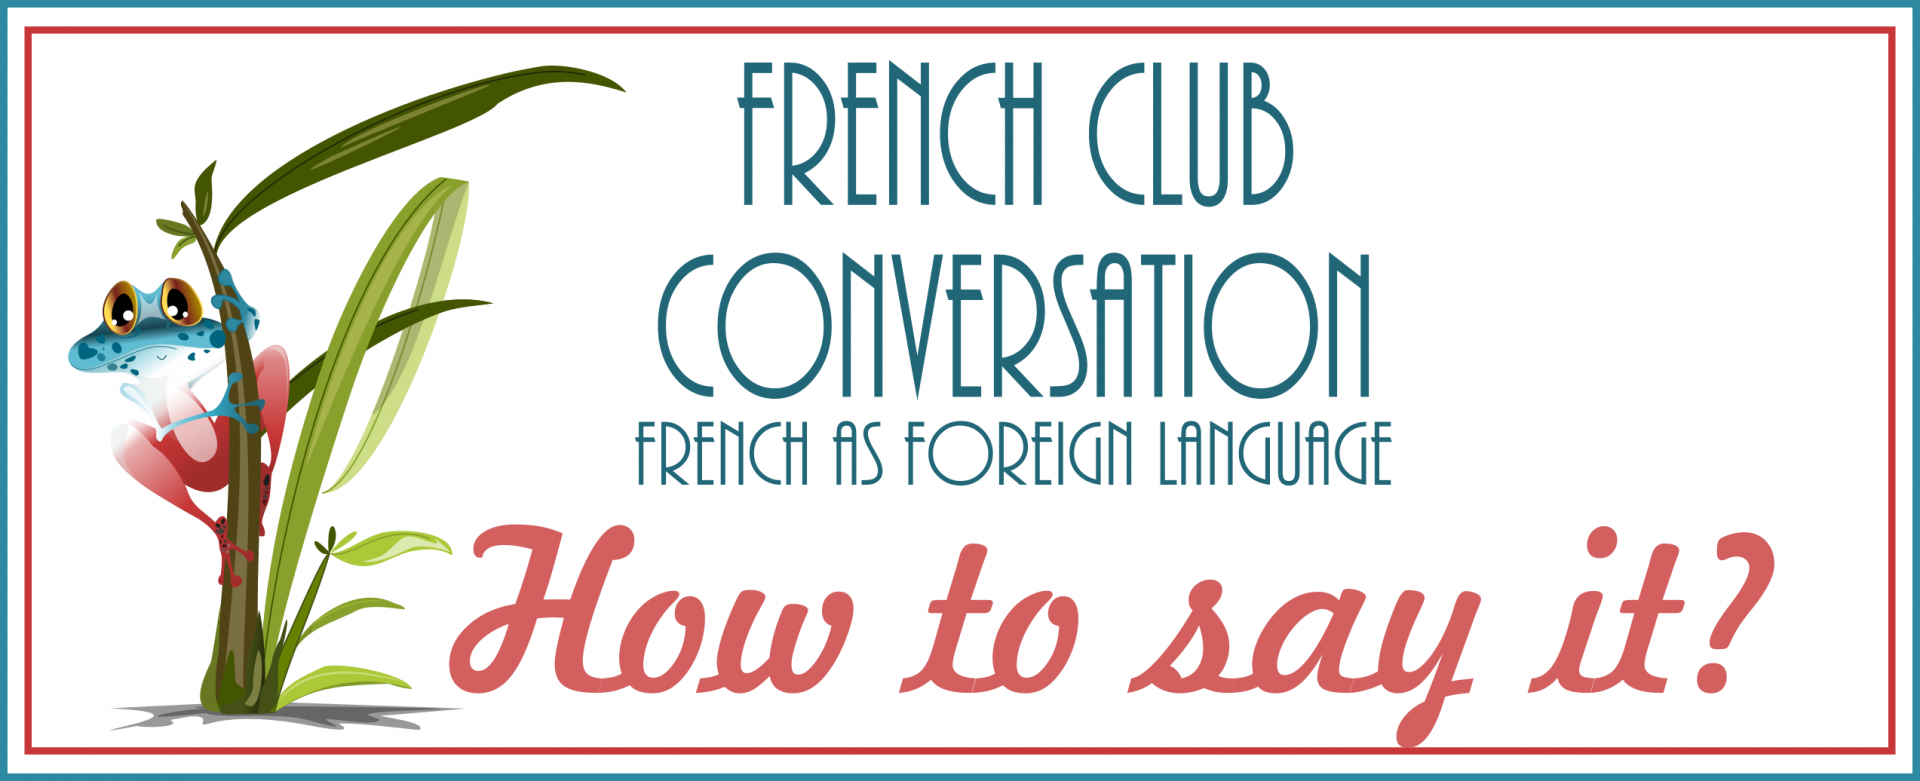 The French Club conversation a way to build friendships